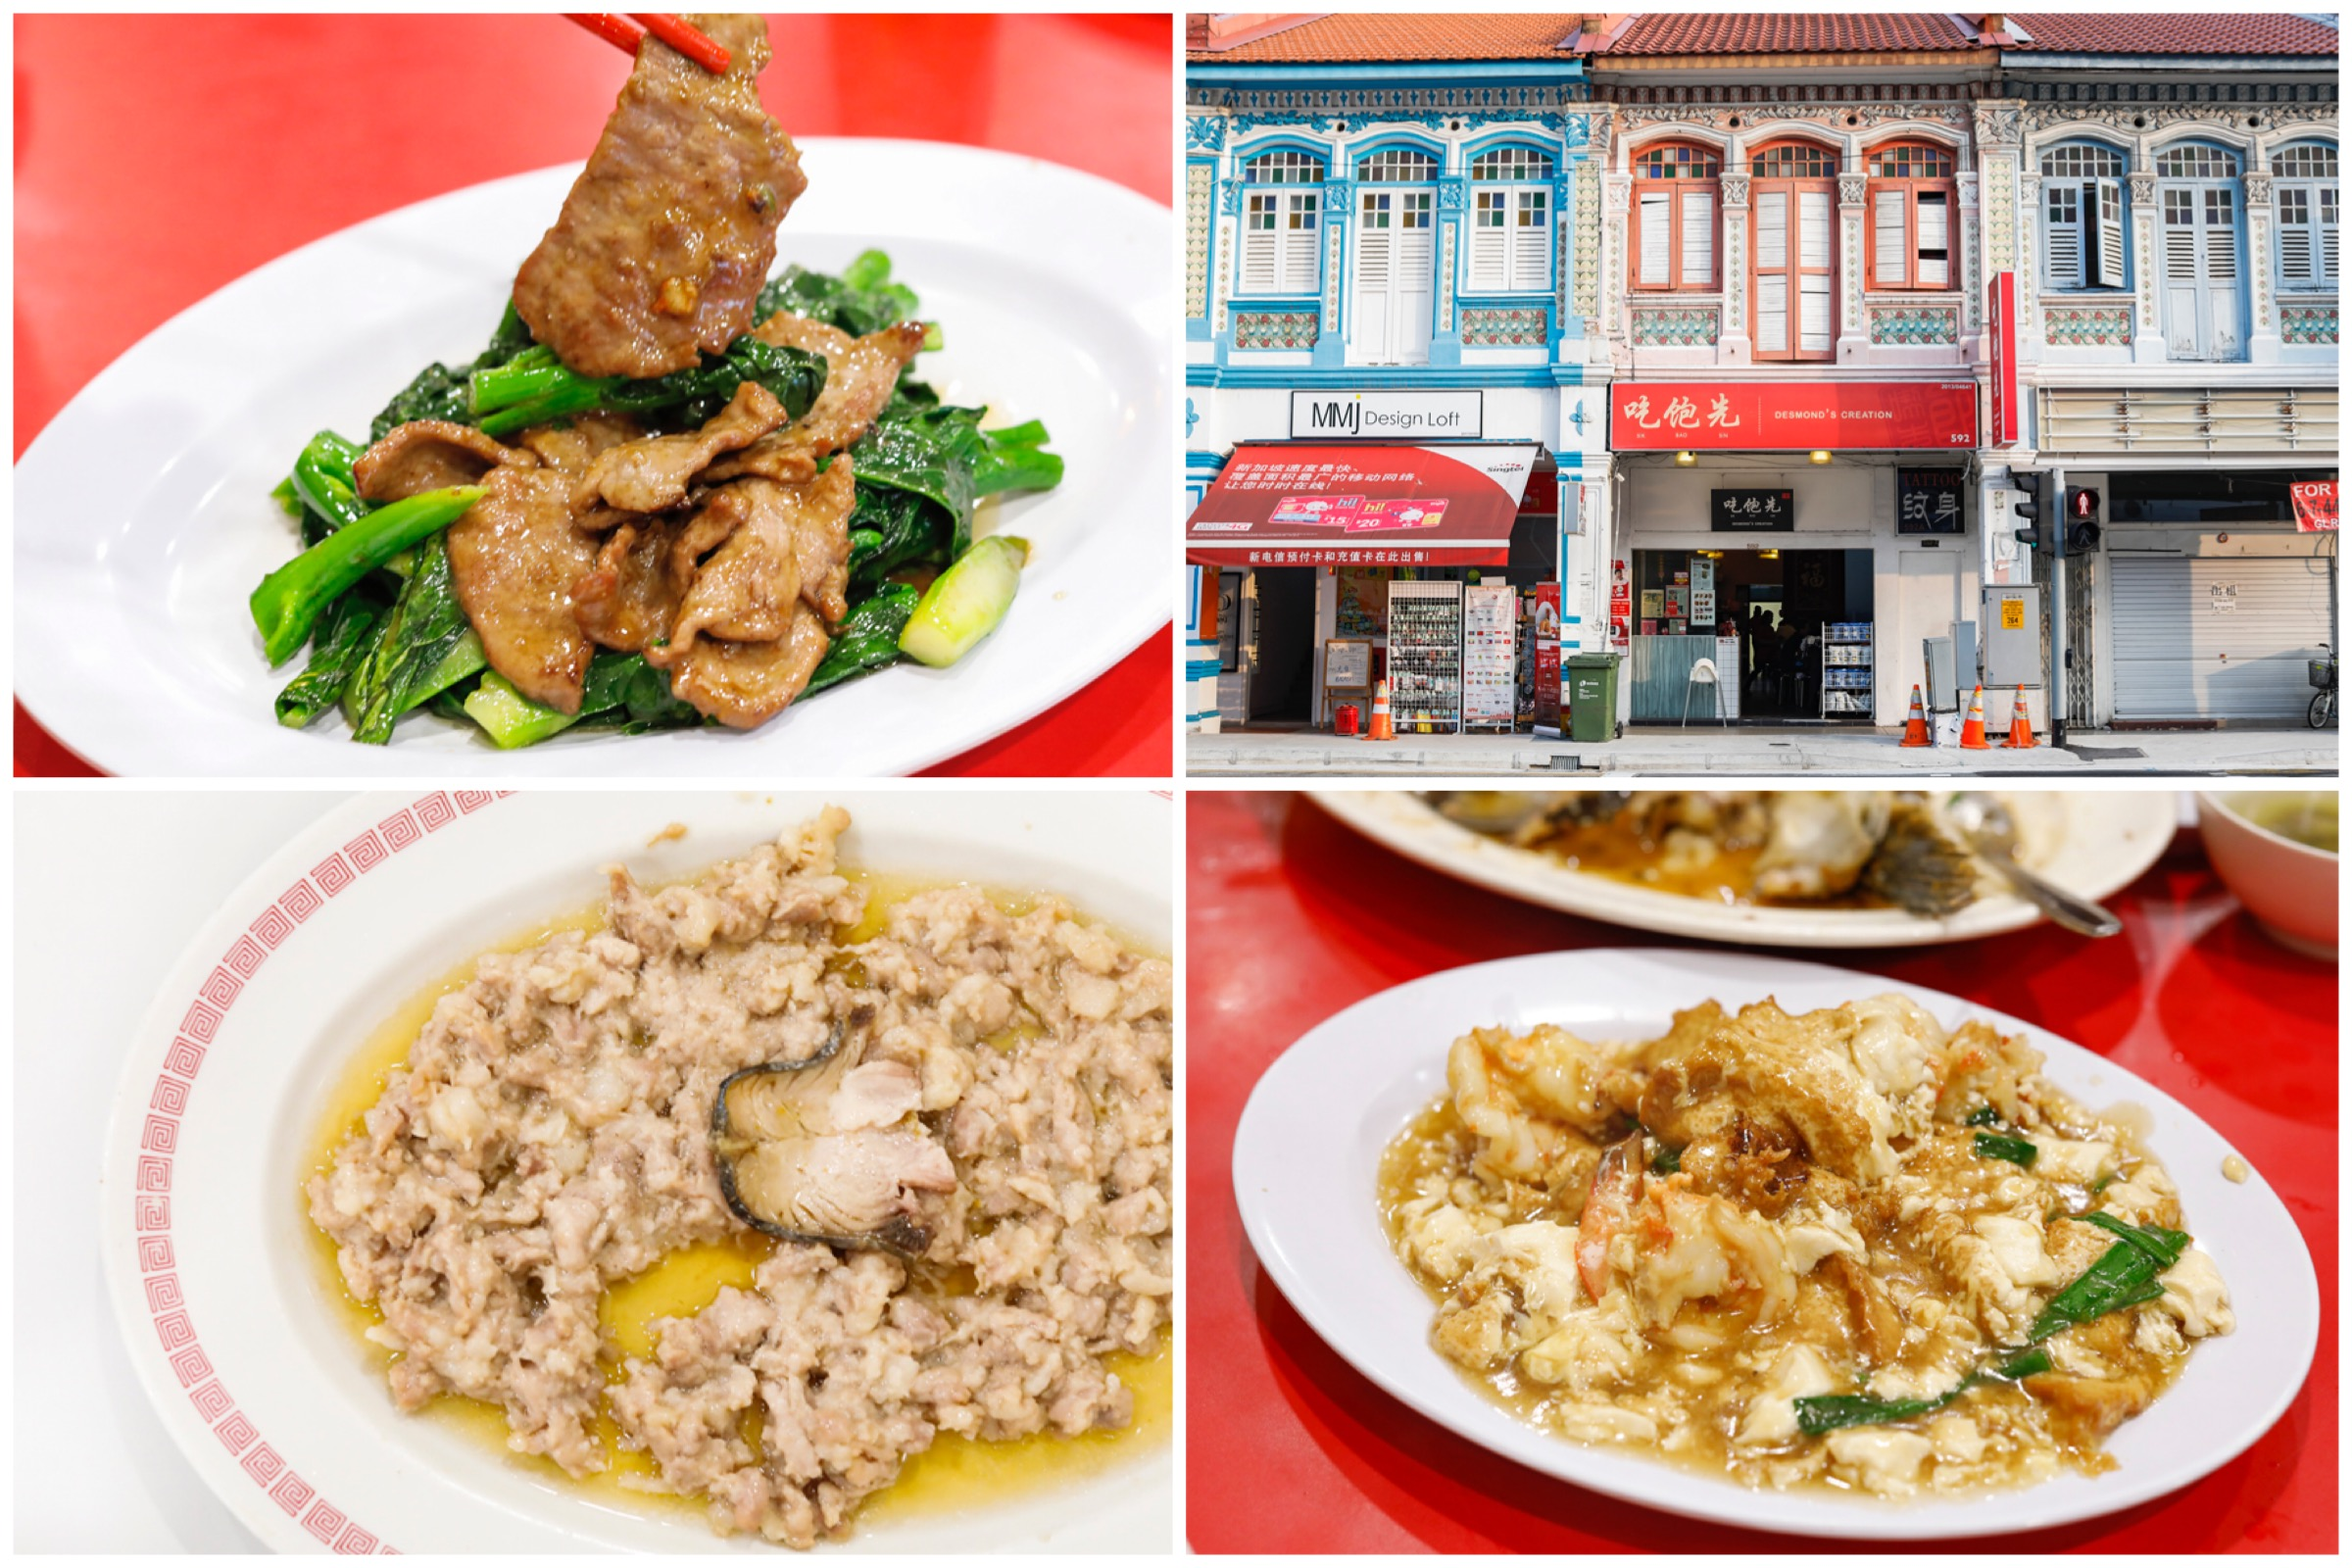 Sik Bao Sin Zhi Char Restaurant Serving Only 13 Items On The